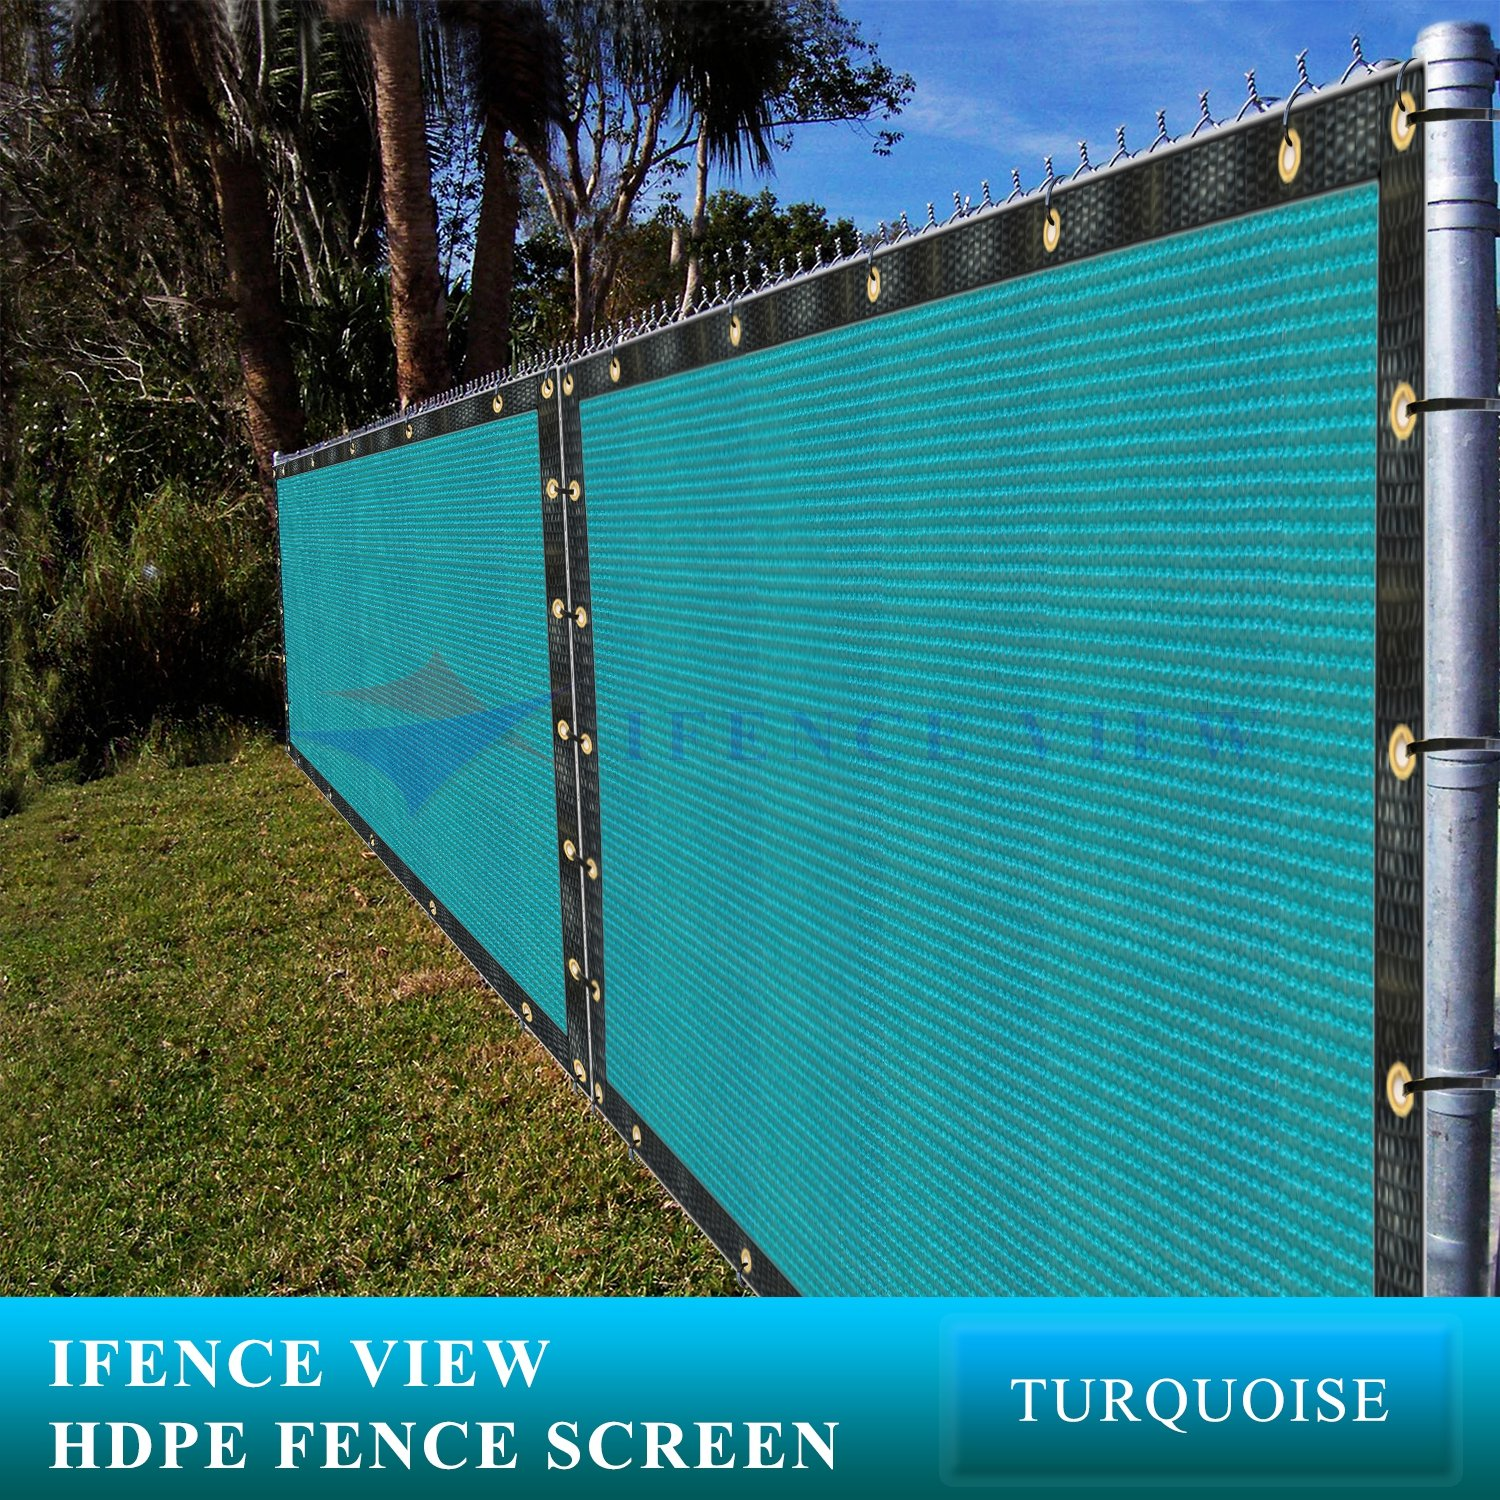 Ifenceview 6'x3' to 6'x50' Turquoise (Green) Shade Cloth/Fence Privacy Screen Fabric Mesh Net for Construction Site, Yard, Driveway, Garden, Railing, Canopy, Awning UV Protection (6' x 8')